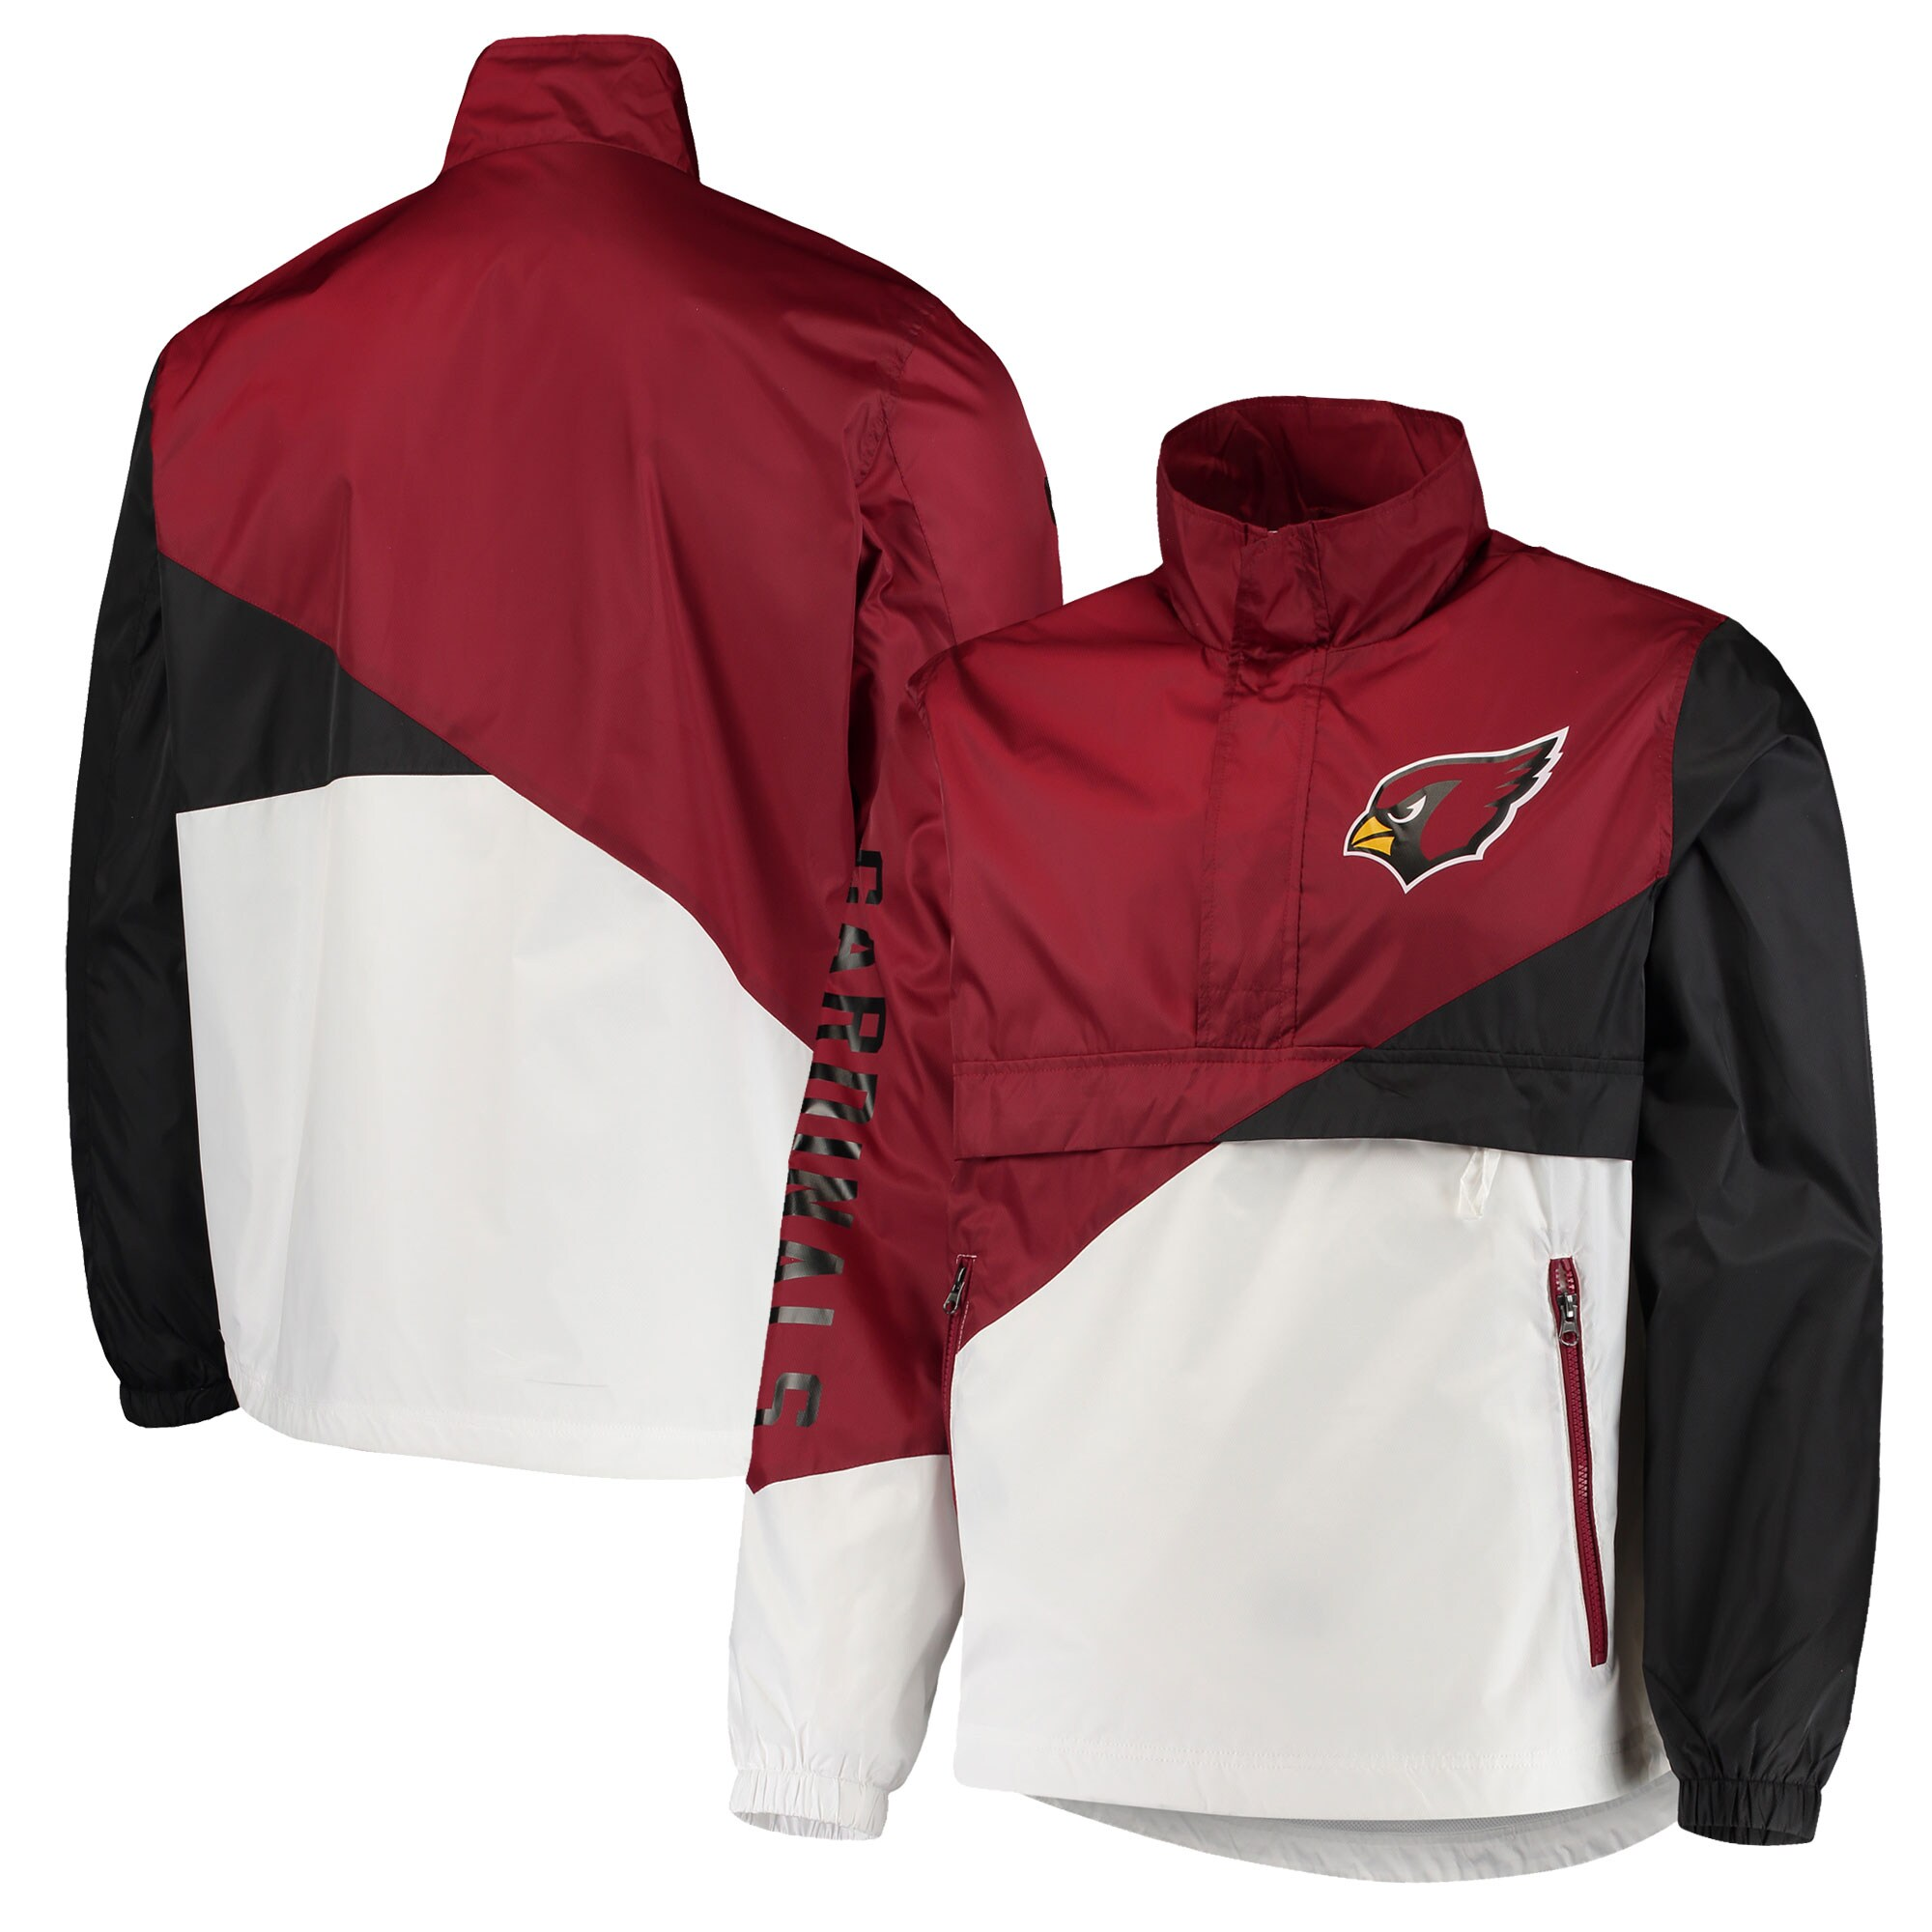 Arizona Cardinals G-III Sports by Carl Banks Double Team Half-Zip Pullover Jacket - Cardinal/White